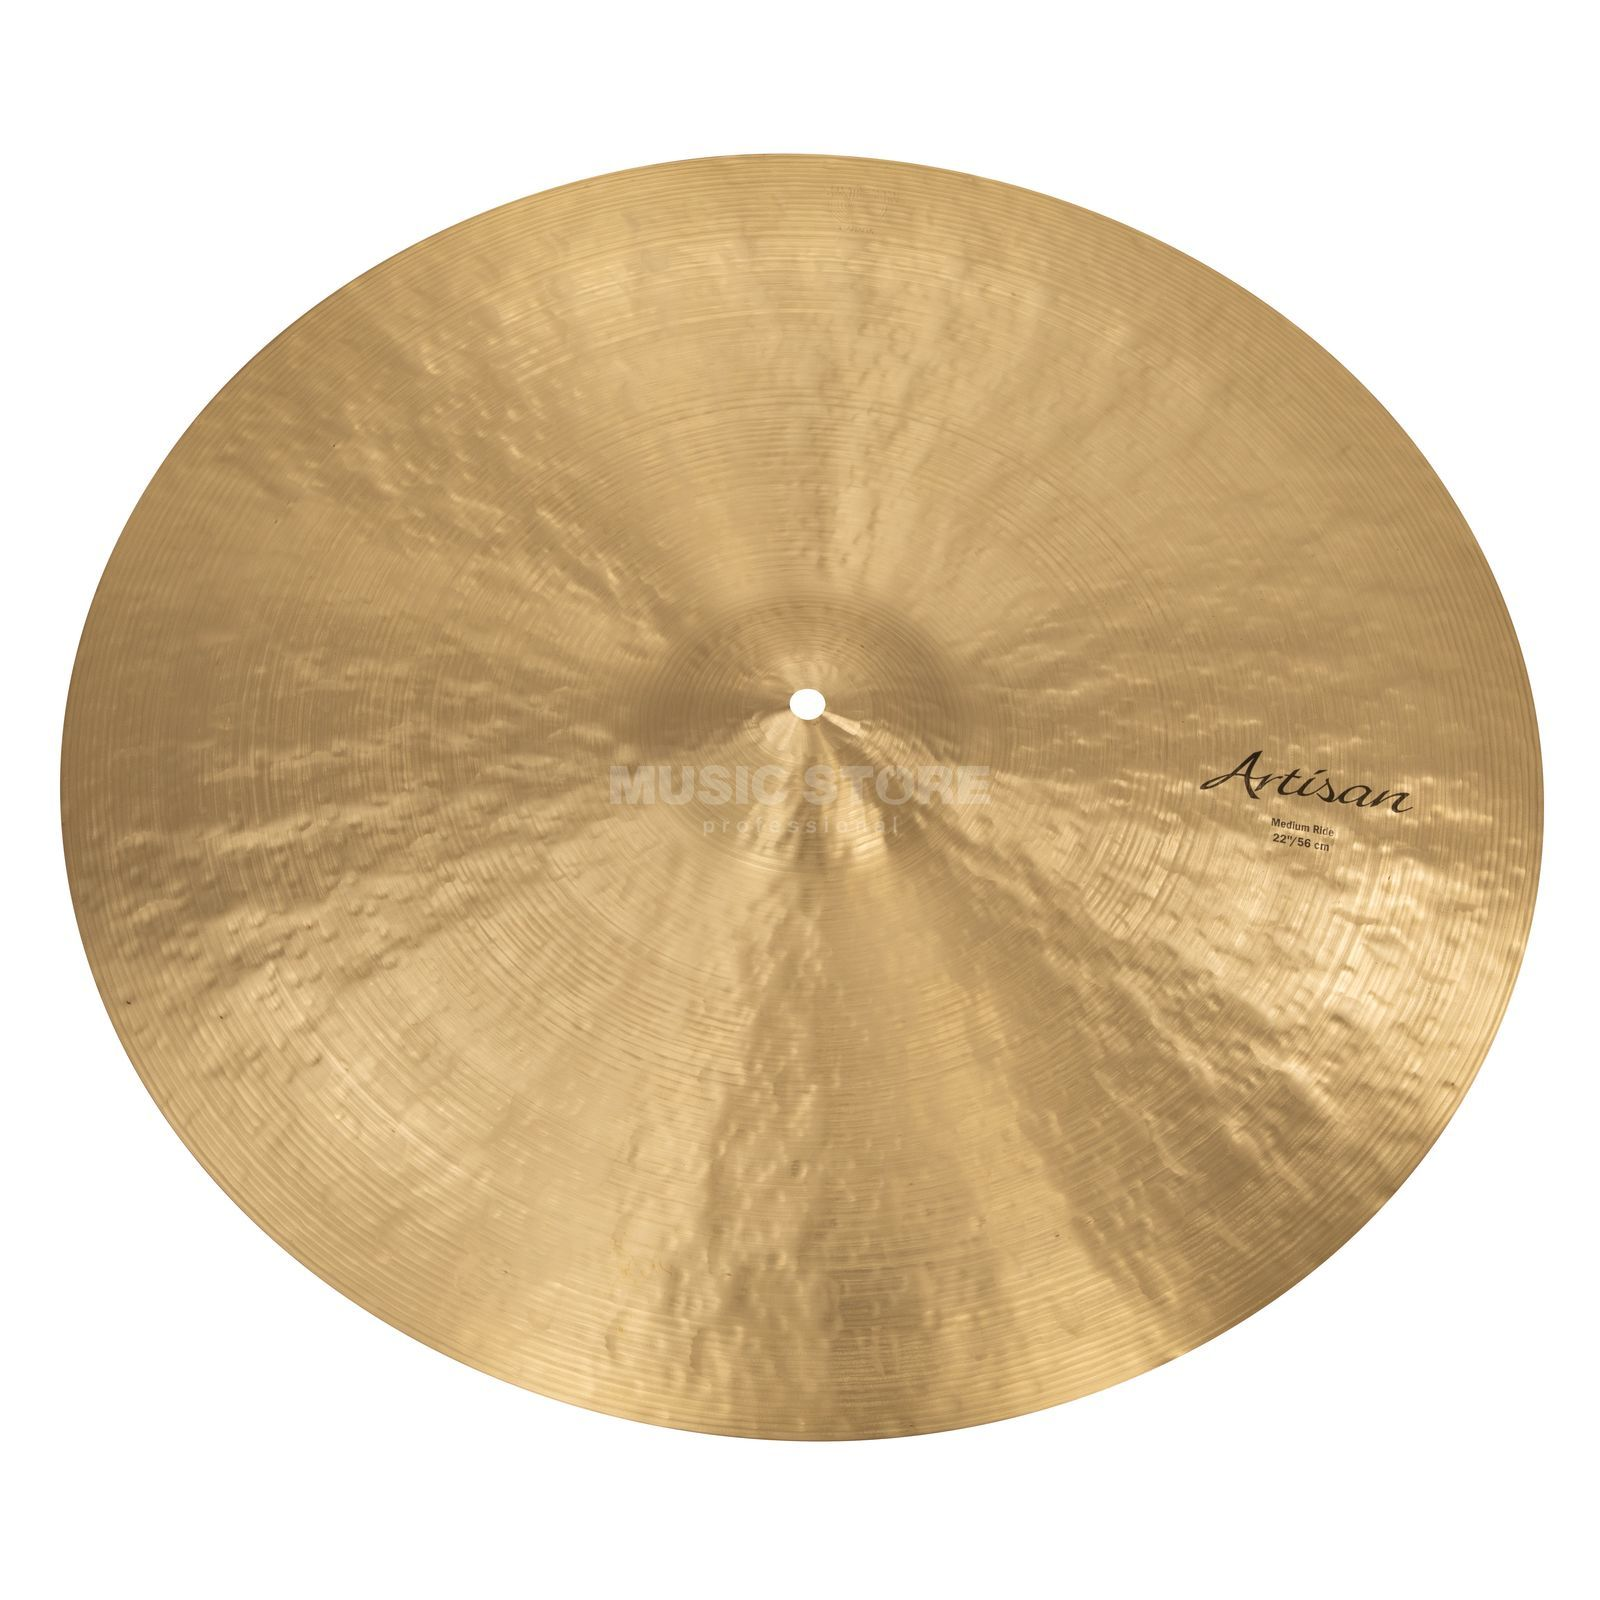 "Sabian Artisan Medium Ride 22"", Natural Finish Produktbillede"